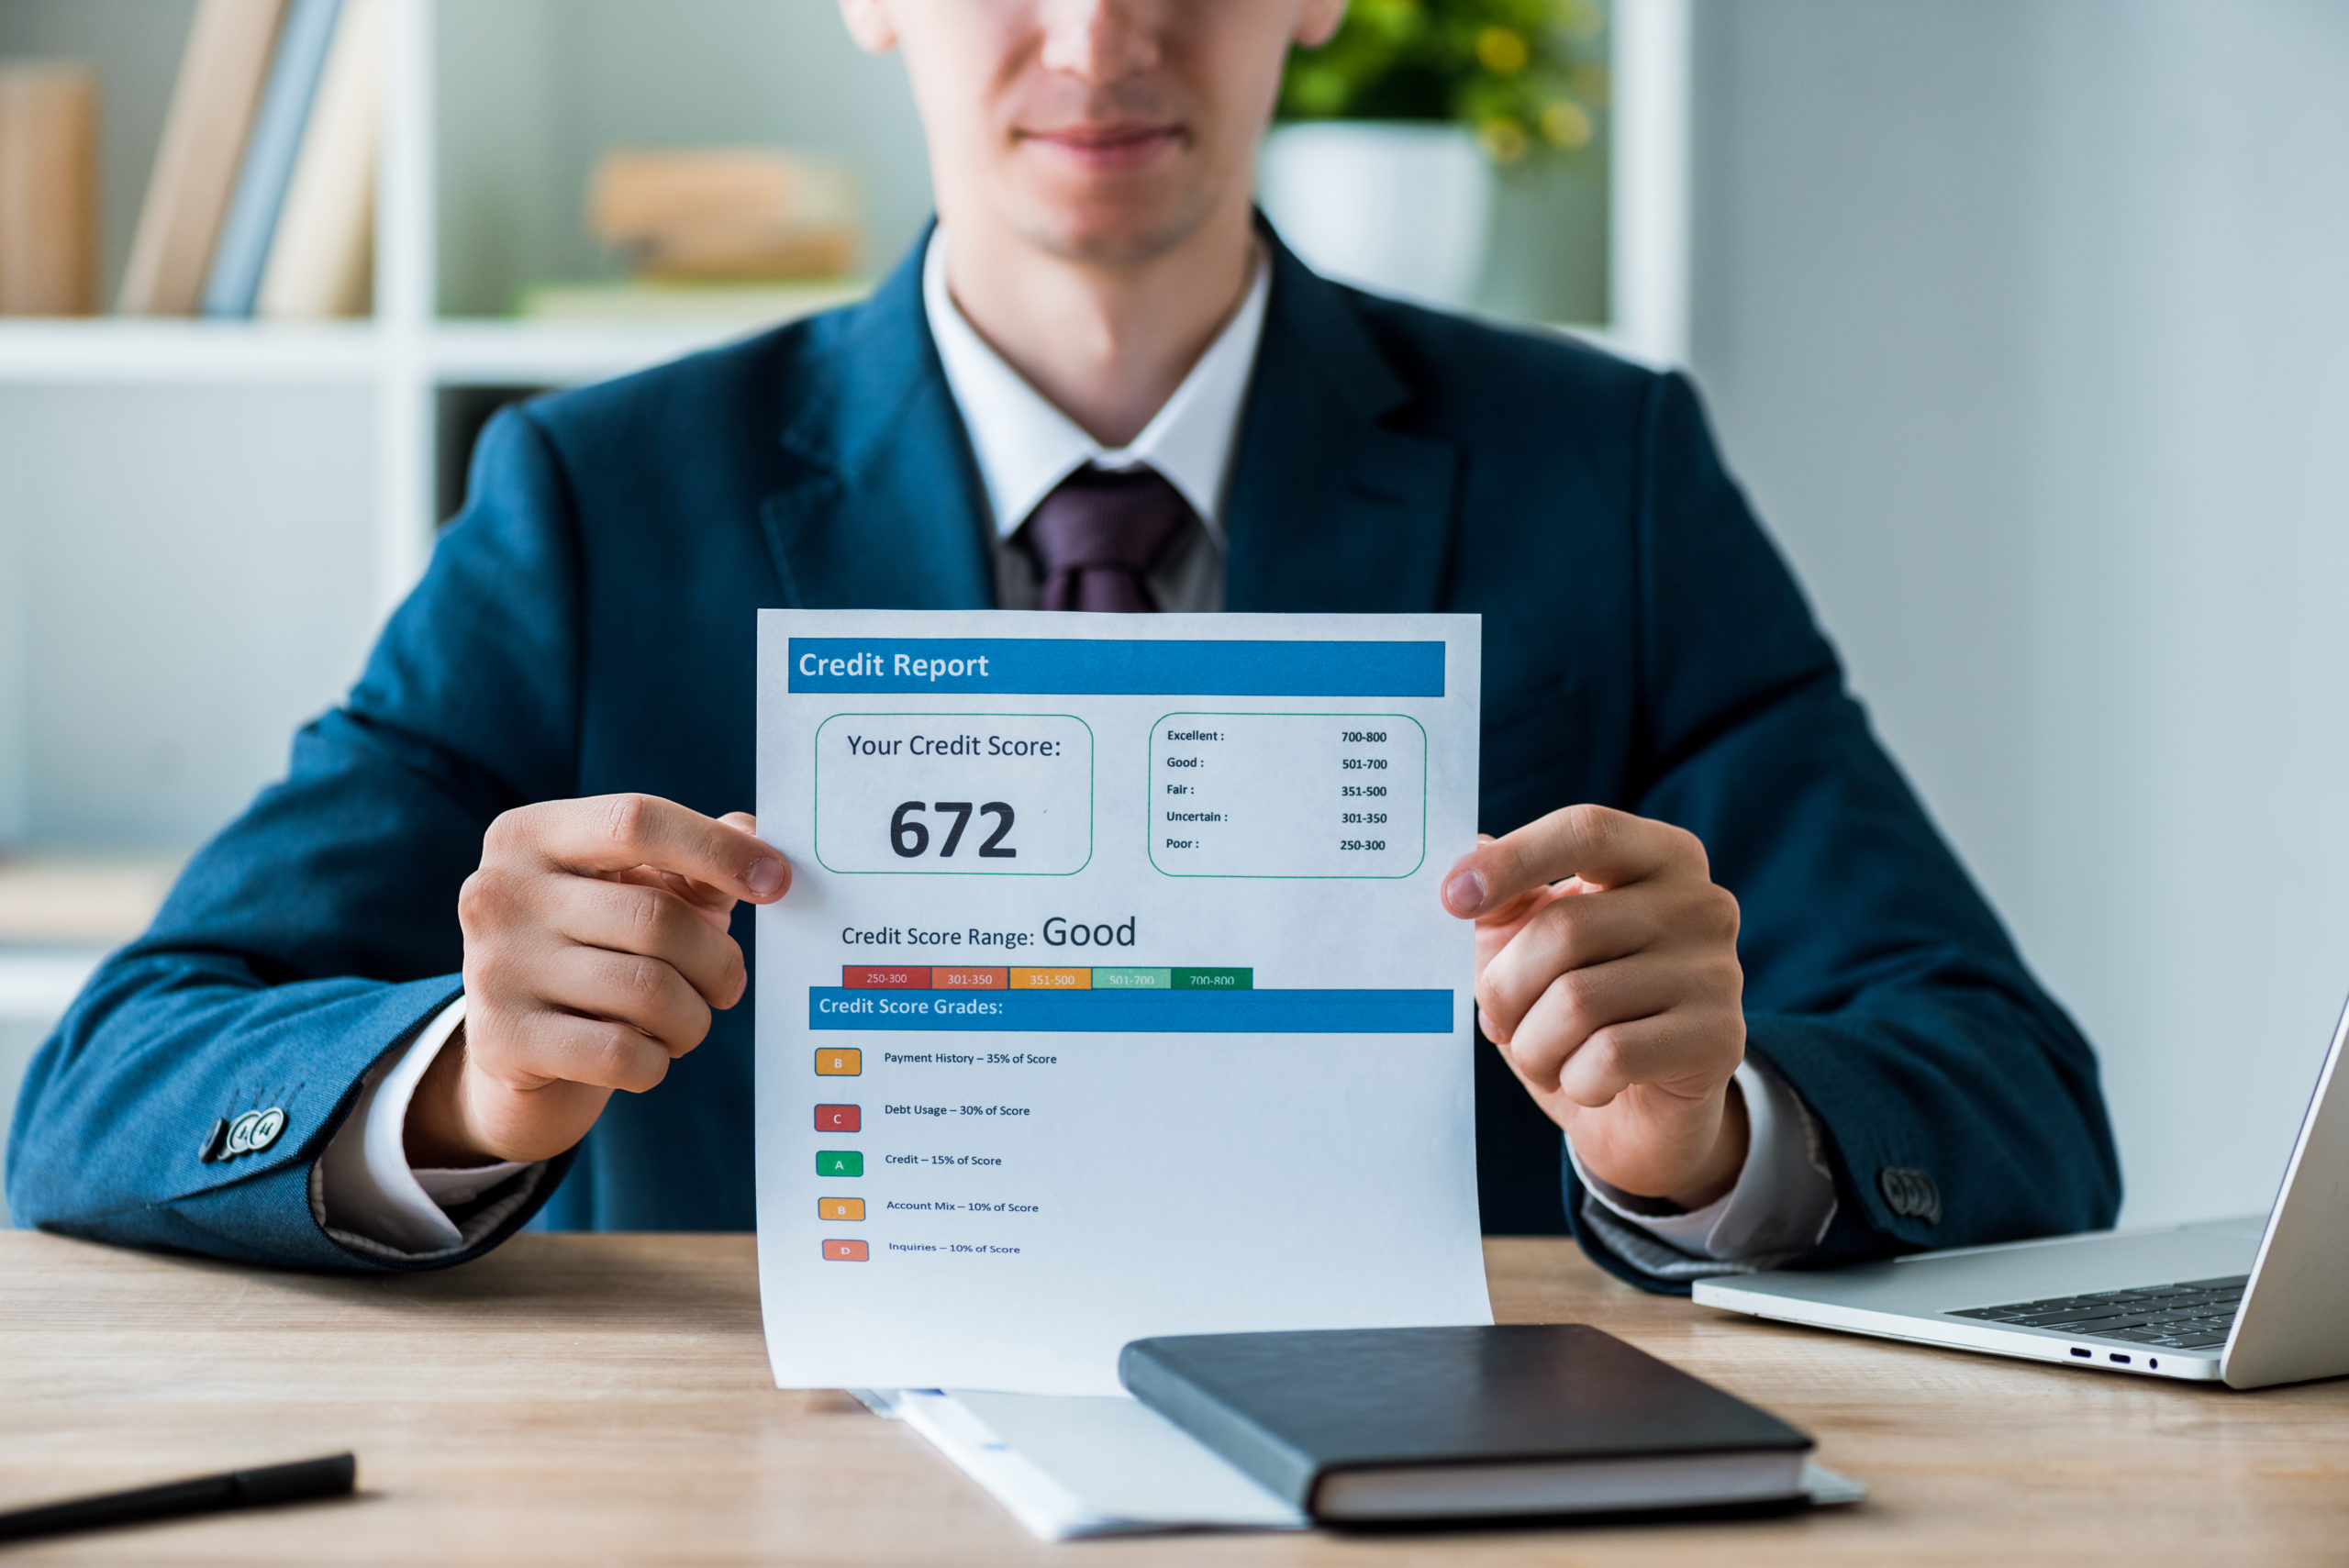 Man dressed in a suit sits behind a desk holding a credit score ranking as good